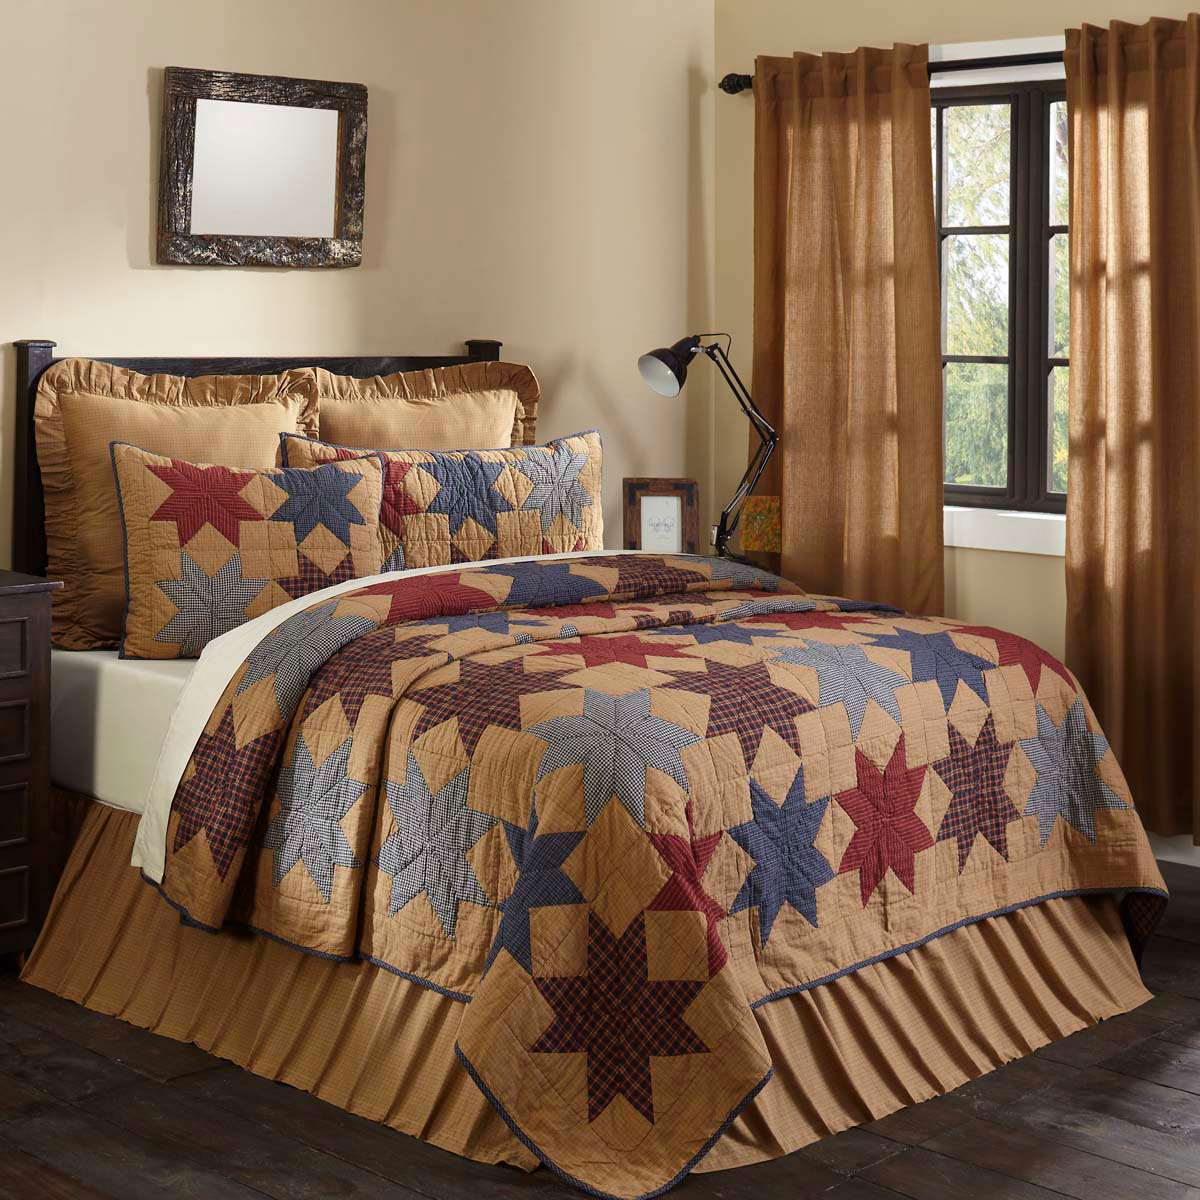 5-pc Kindred Star Queen Quilt Set - Bed Skirt, King Shams and Accent Pillow -VHC